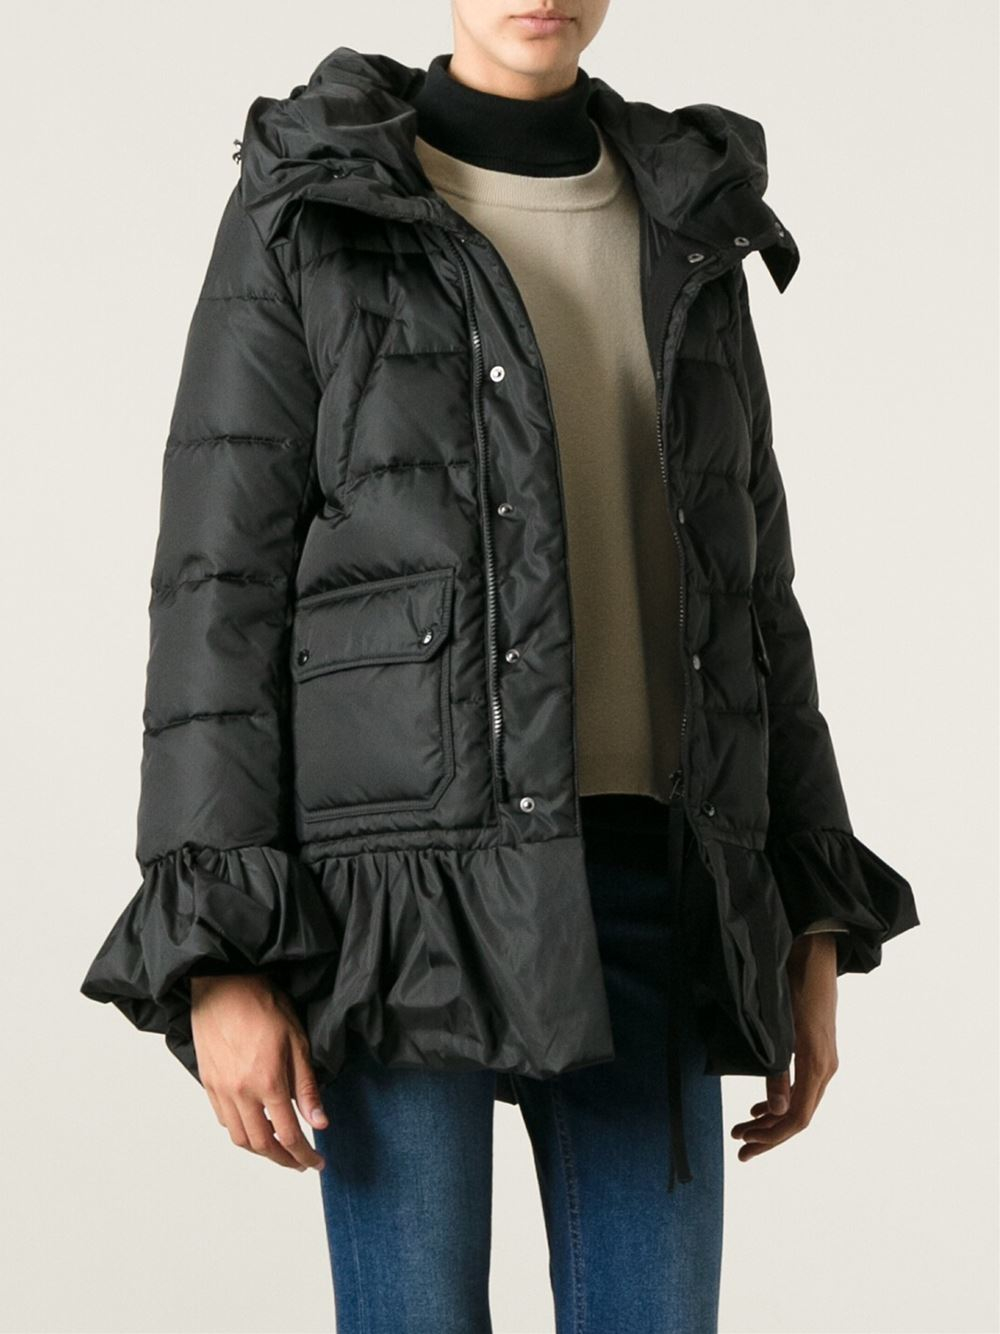 Padded Coats. Showing 48 of results that match your query. Search Product Result. Product - Adidas Womens Slim Padded Coat Black L. Product Image. Price $ Product Title. Adidas Womens Slim Padded Coat Black L. Product - Adidas Womens Padded Bomber Jacket Olive Green. Product Image. Price $